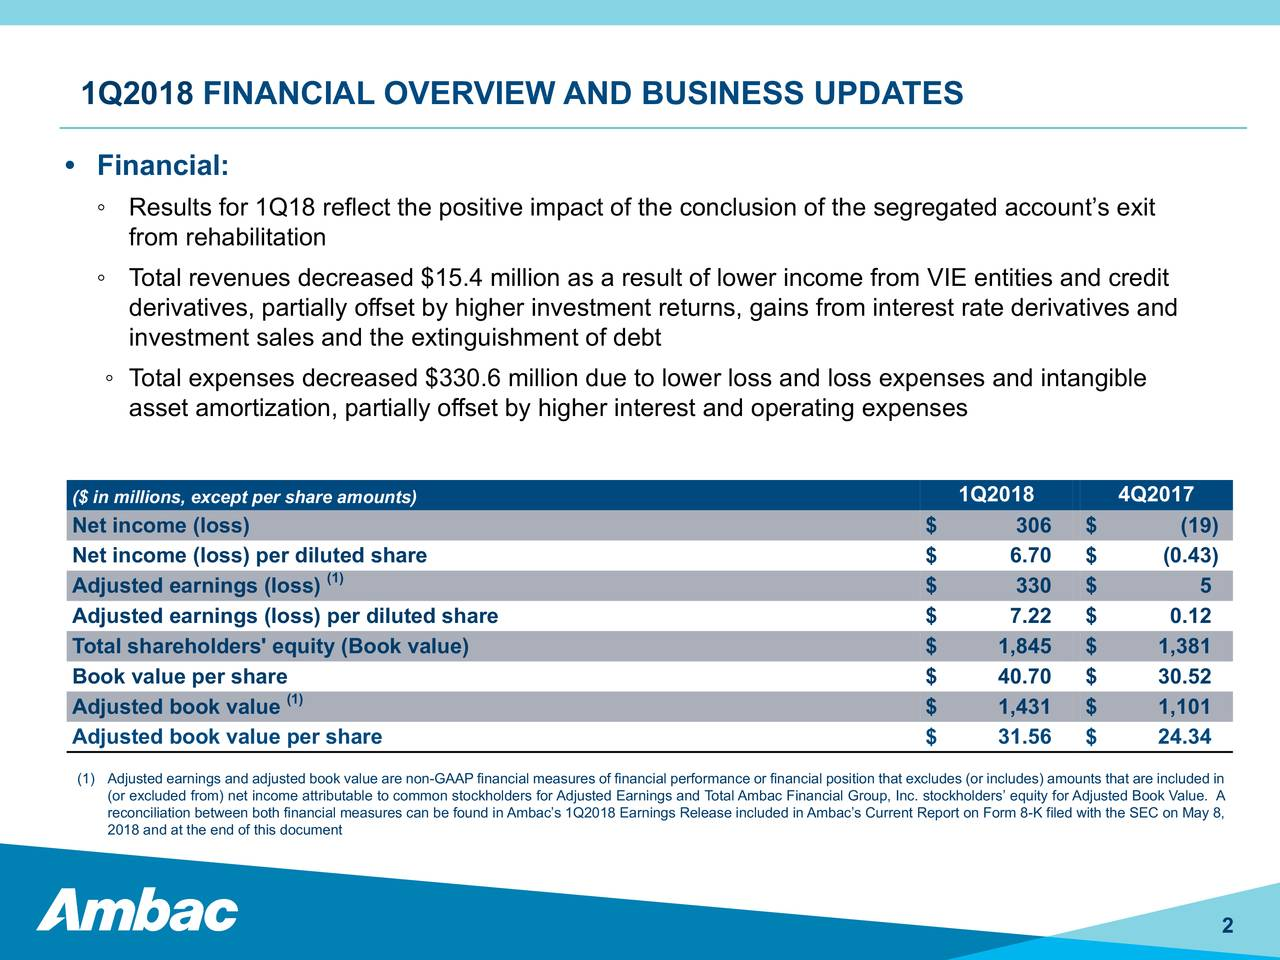 Ambac (AMBC) Announces Quarterly Earnings Results